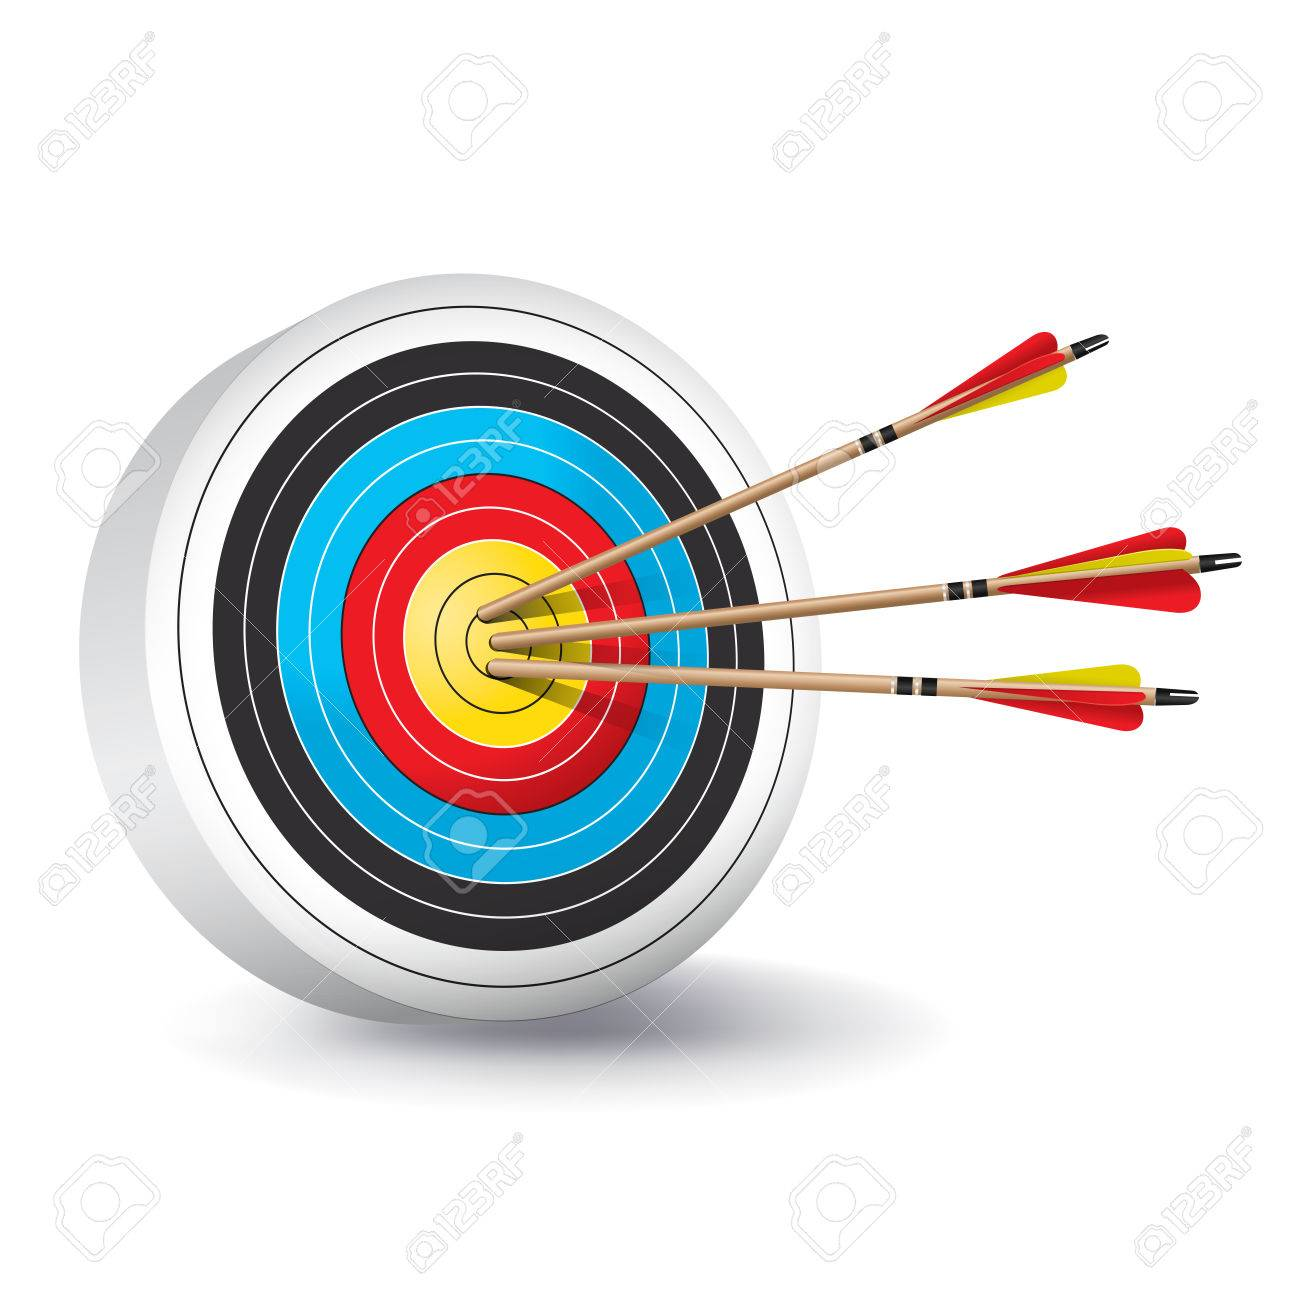 hight resolution of a traditional archery target with colorful rings and wooden red and yellow fletched arrows in the